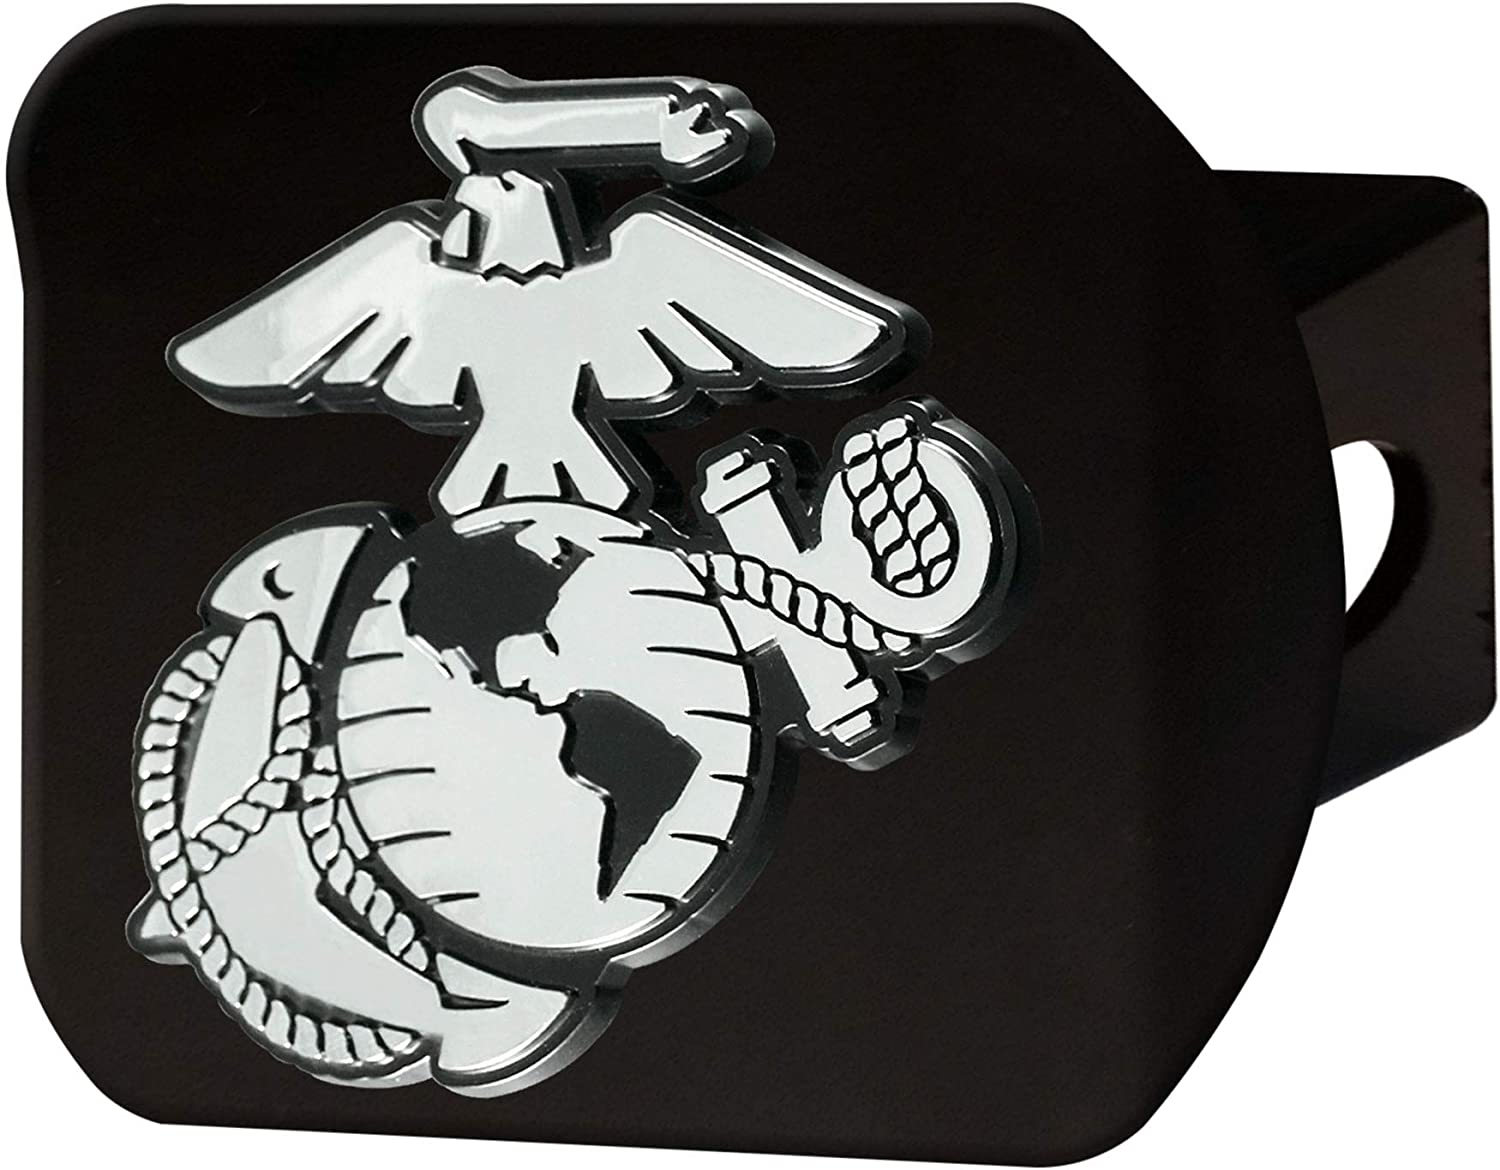 1 Pack FANMATS 22698 U.S Marines Black Hitch Cover